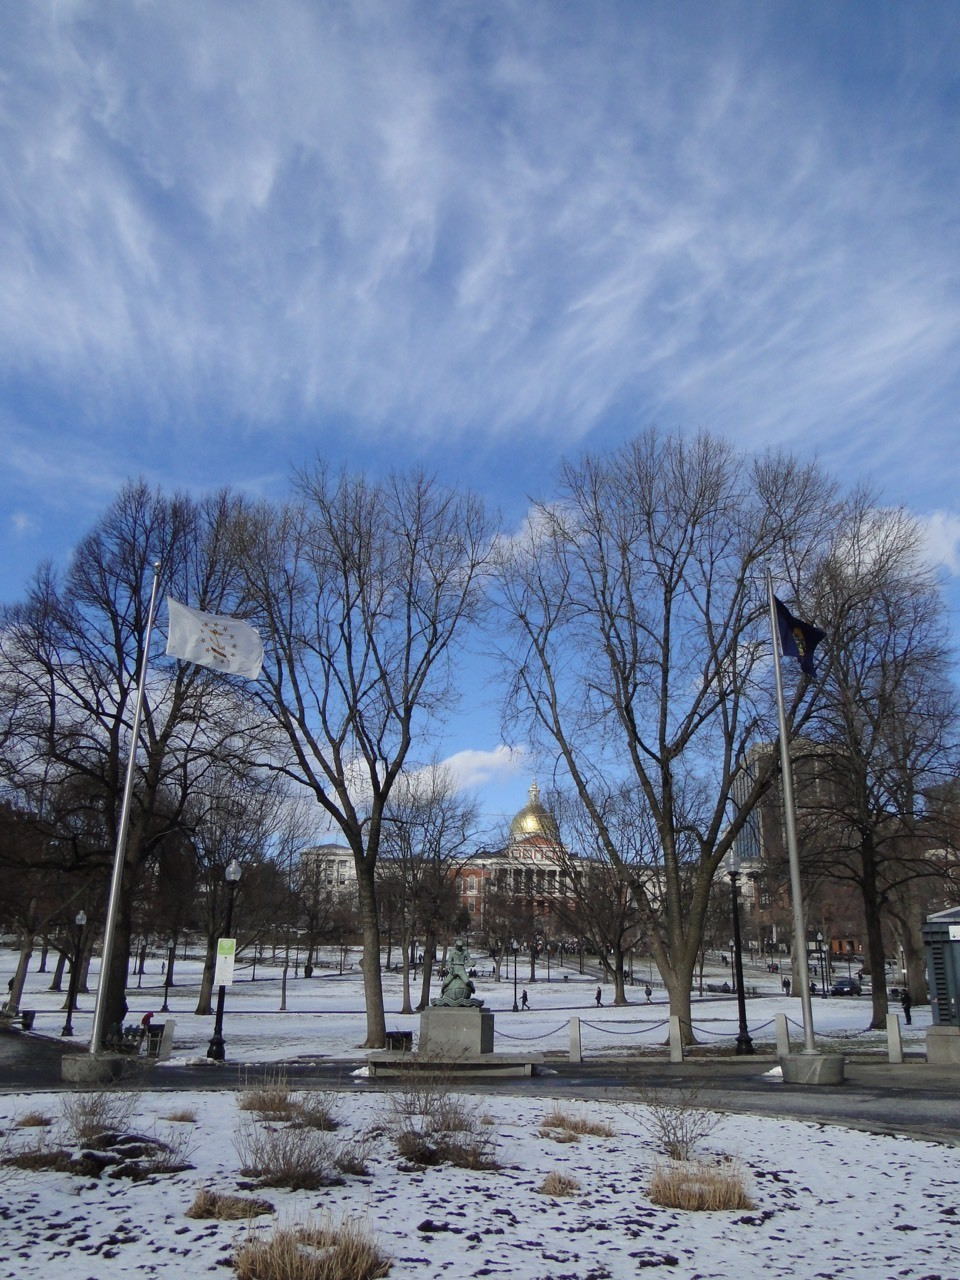 Beautiful cloud under the blue sky after a snowy storm.